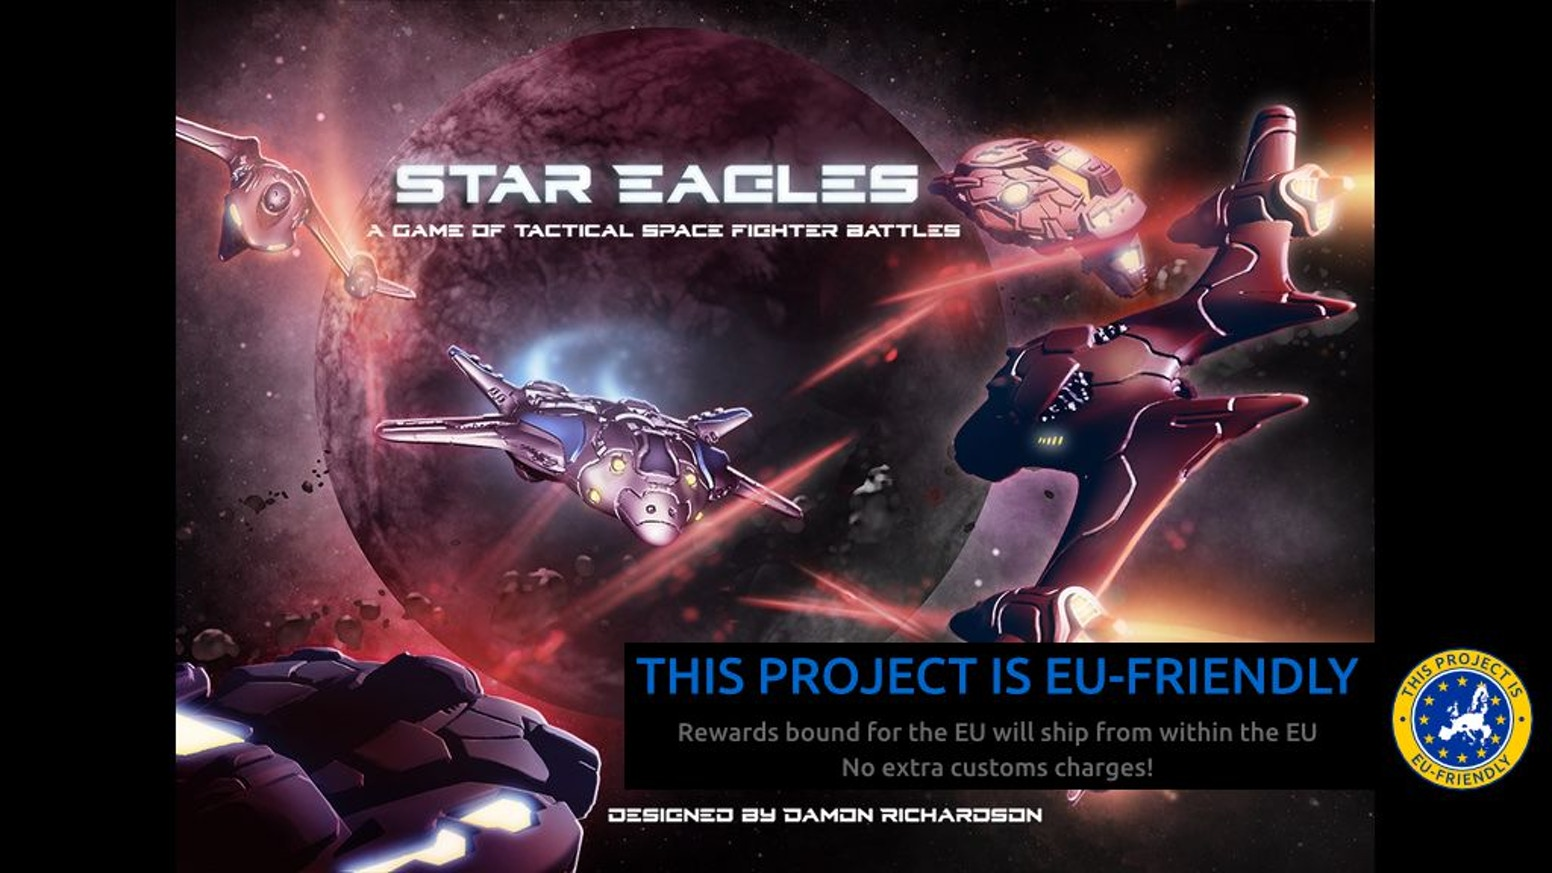 Star Eagles is a science fiction action game of futuristic space fighter combat using highly detailed 1/285 scale miniature spaceships